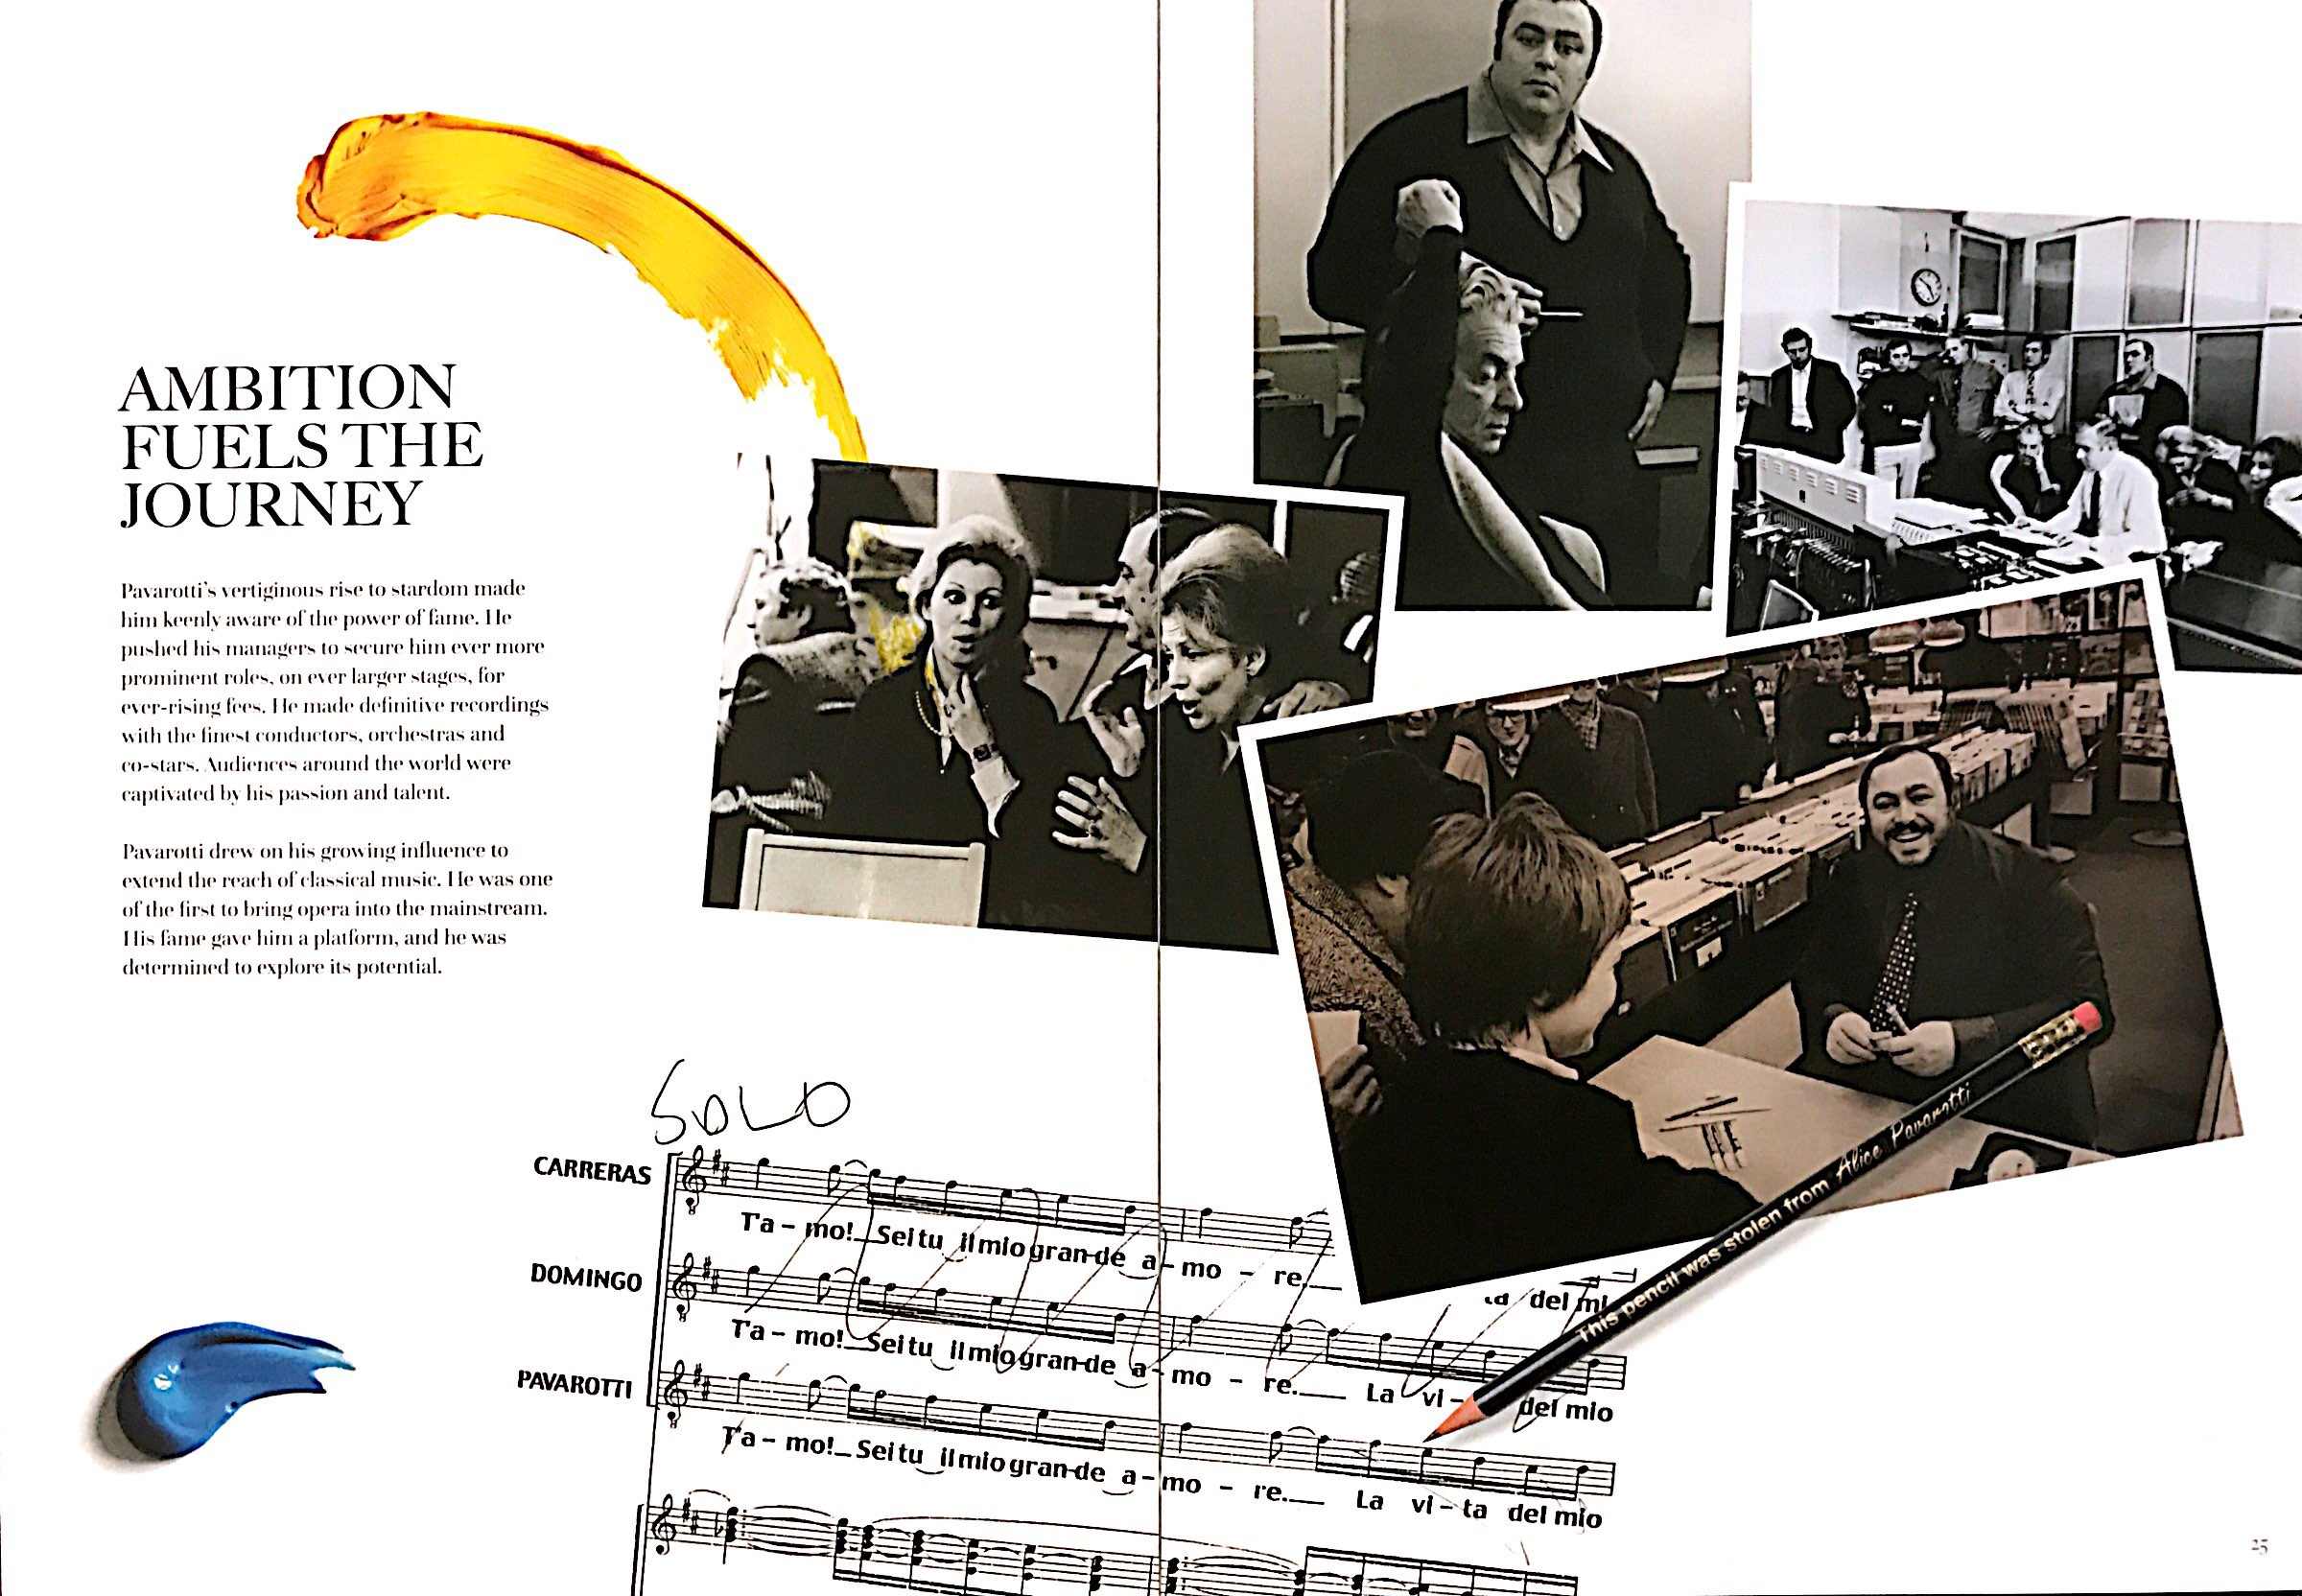 A musical score annotated by Luciano Pavarotti